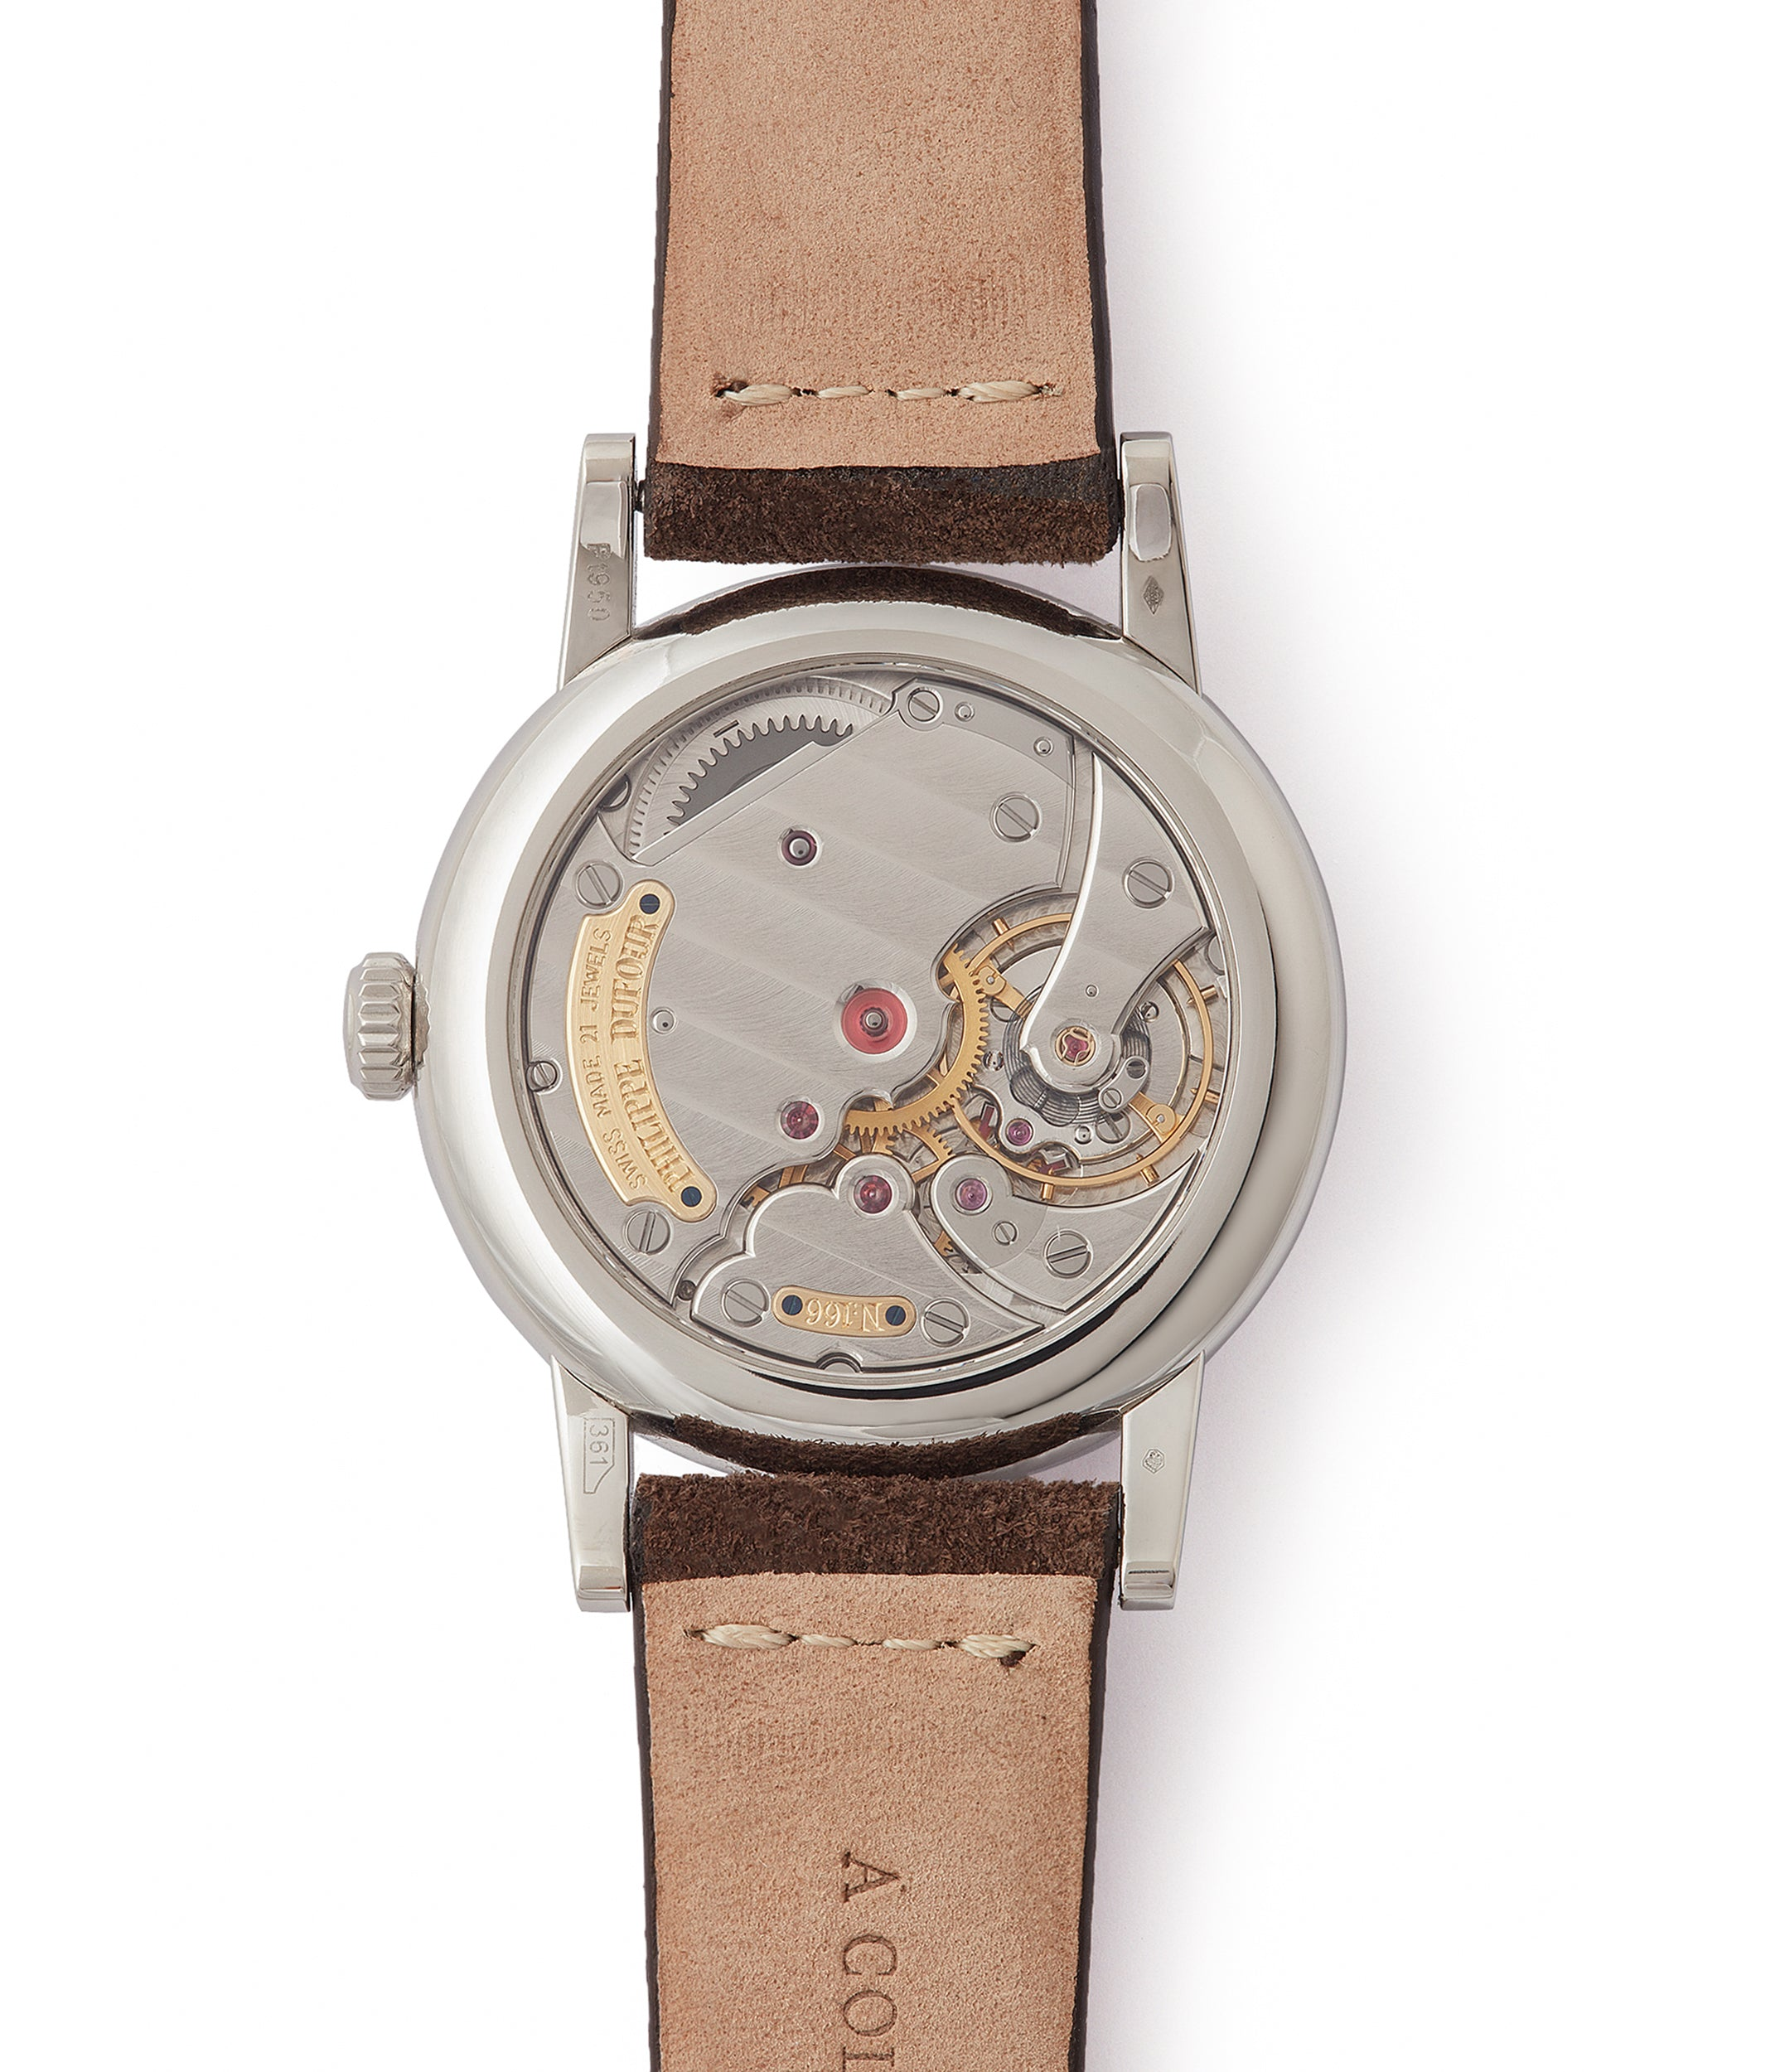 hand-made Simplicity by Philippe Dufour platinum 37mm time-only rare dress watch  for sale at A Collected Man London UK specialist of rare watches